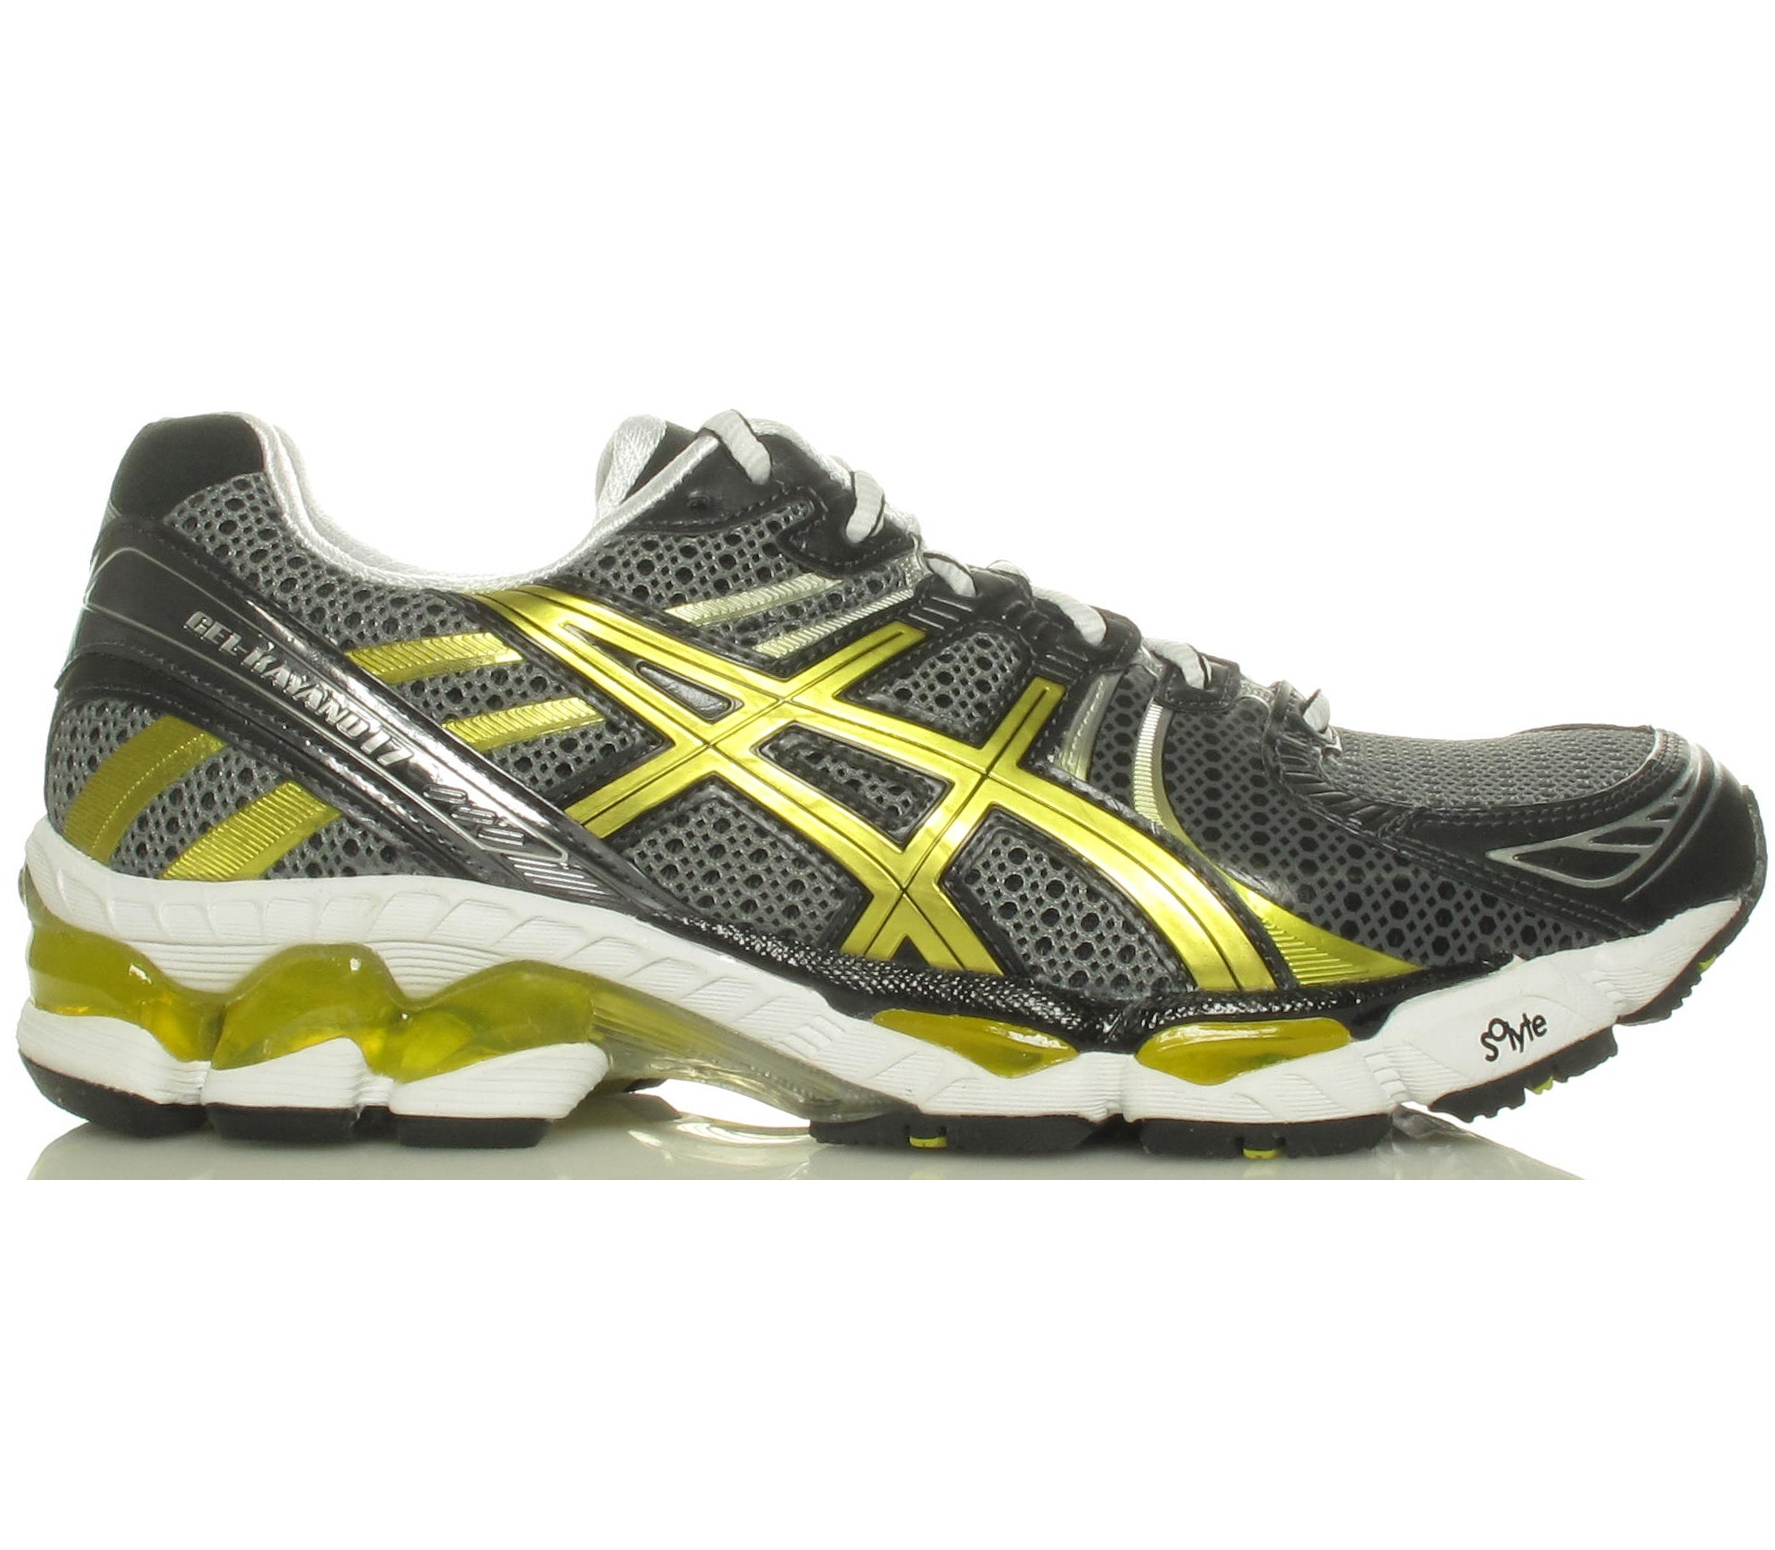 chaussures asics homme pas cher costa rica 2011 world rafting championship. Black Bedroom Furniture Sets. Home Design Ideas